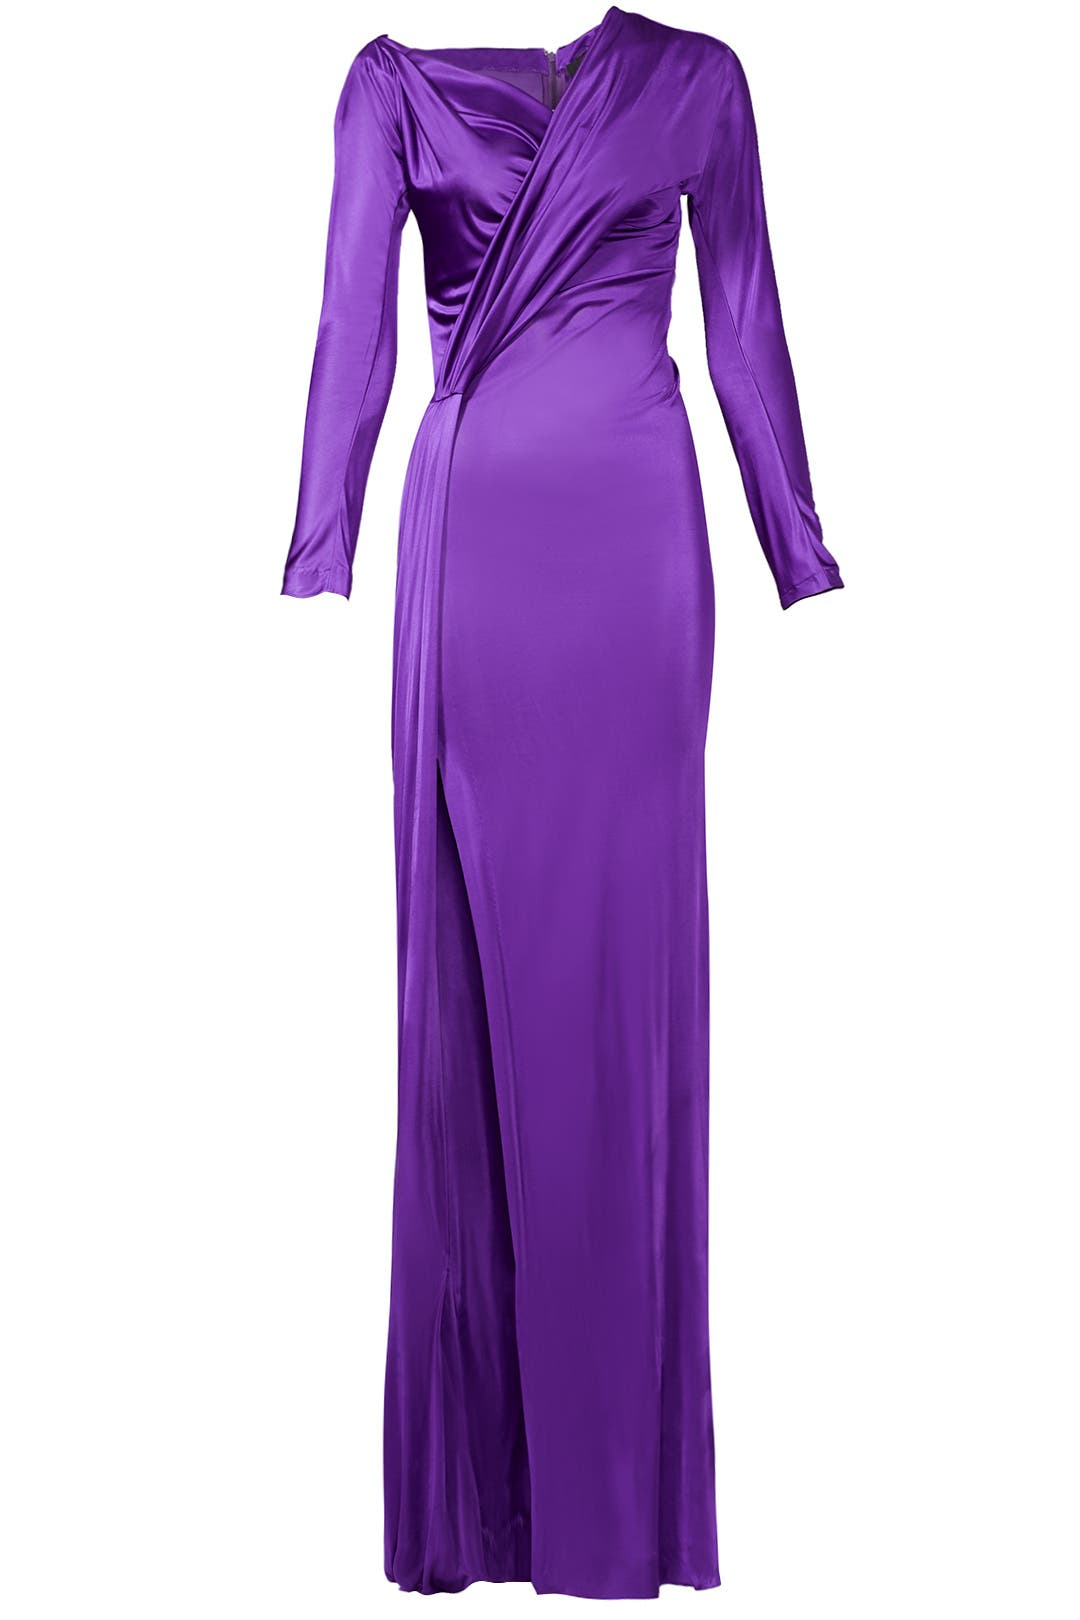 Liquid Violet Gown by DSQUARED2